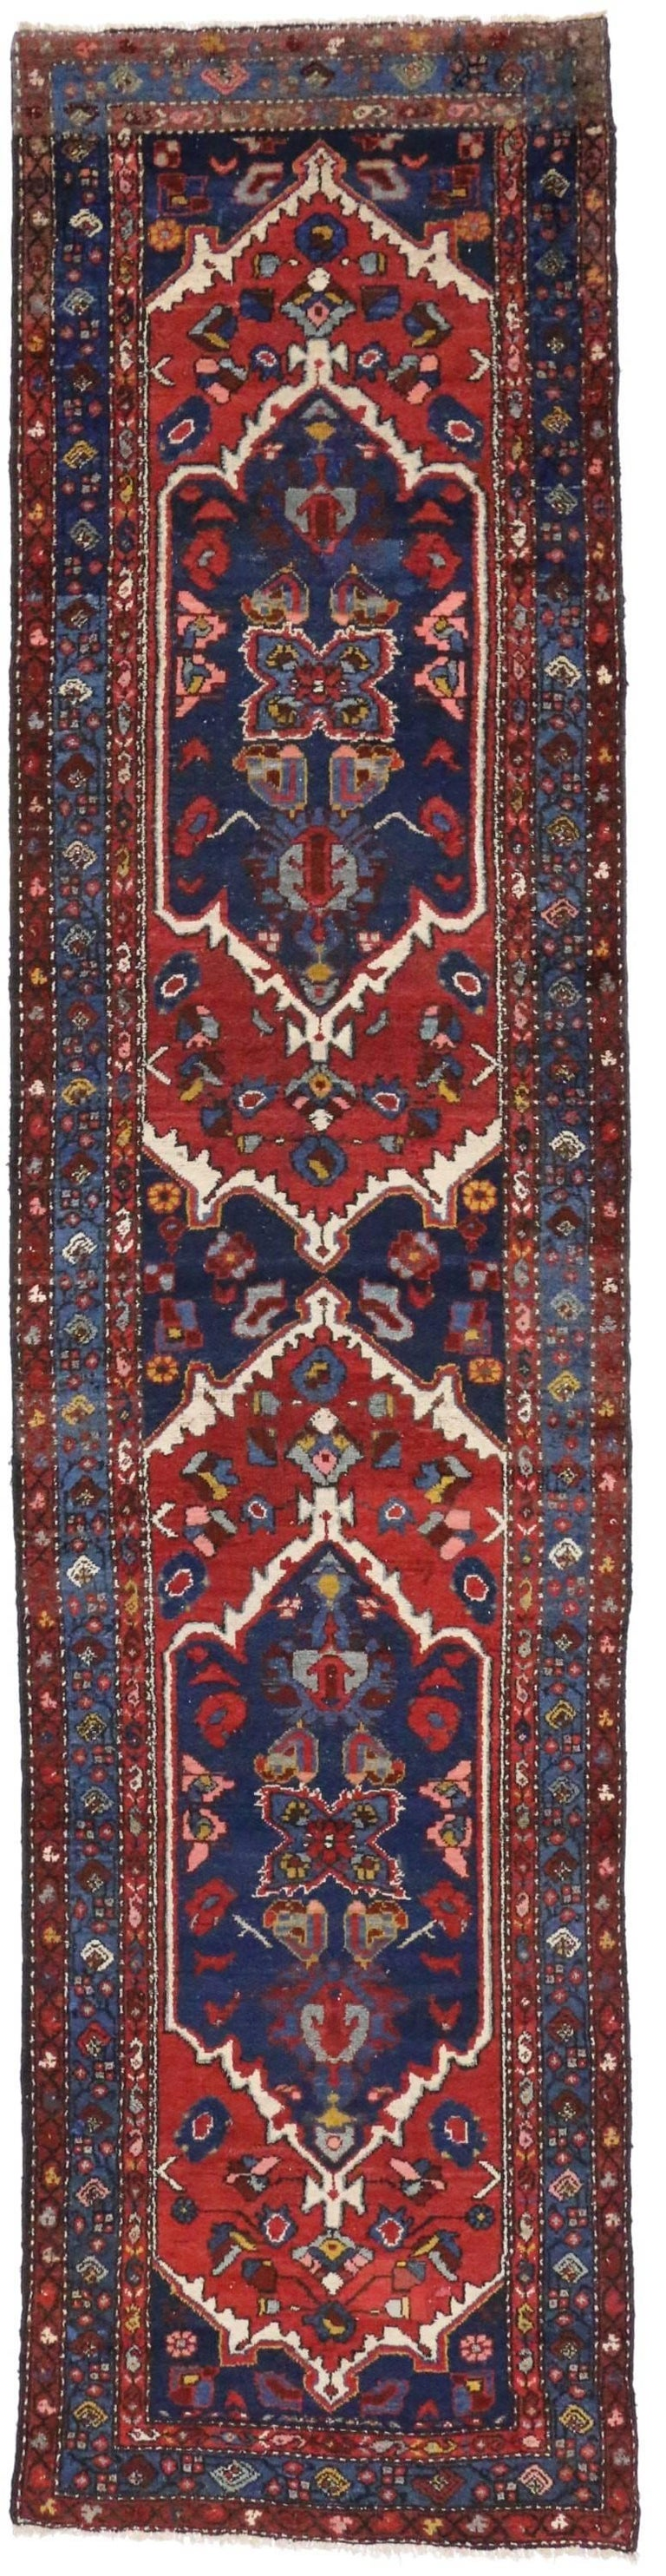 Antique Persian Hamadan Extra-Long Hallway Runner with English Manor Tudor Style For Sale 4